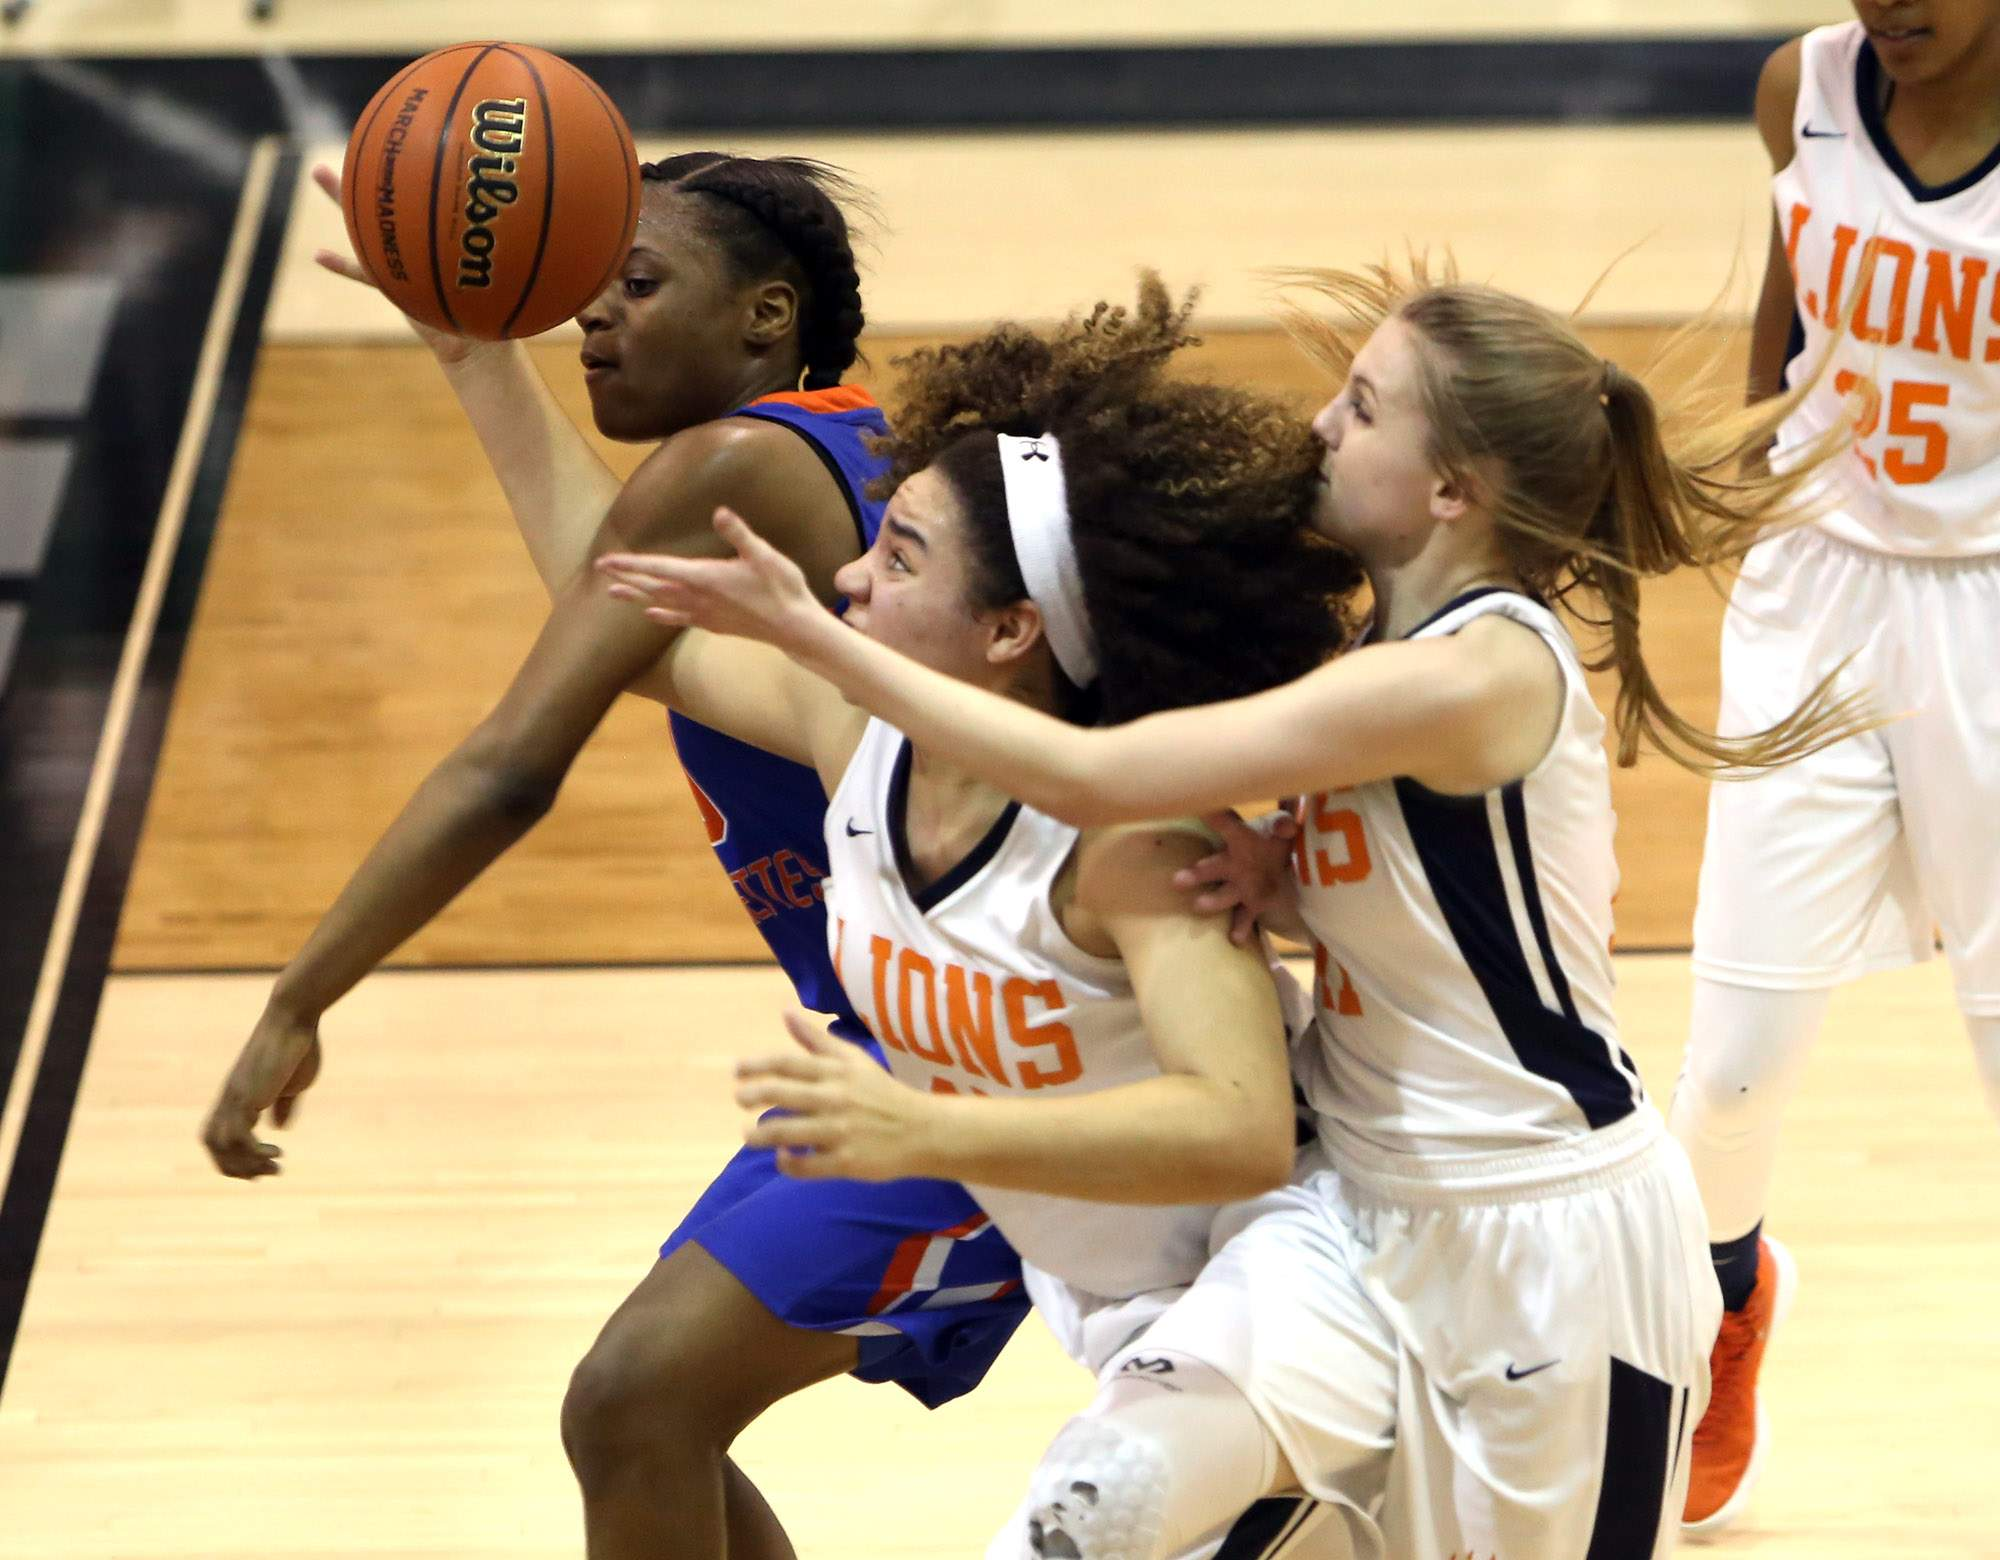 Jeniah Thompson and Lexi Swalls battle for a rebound in Tuesday's game.